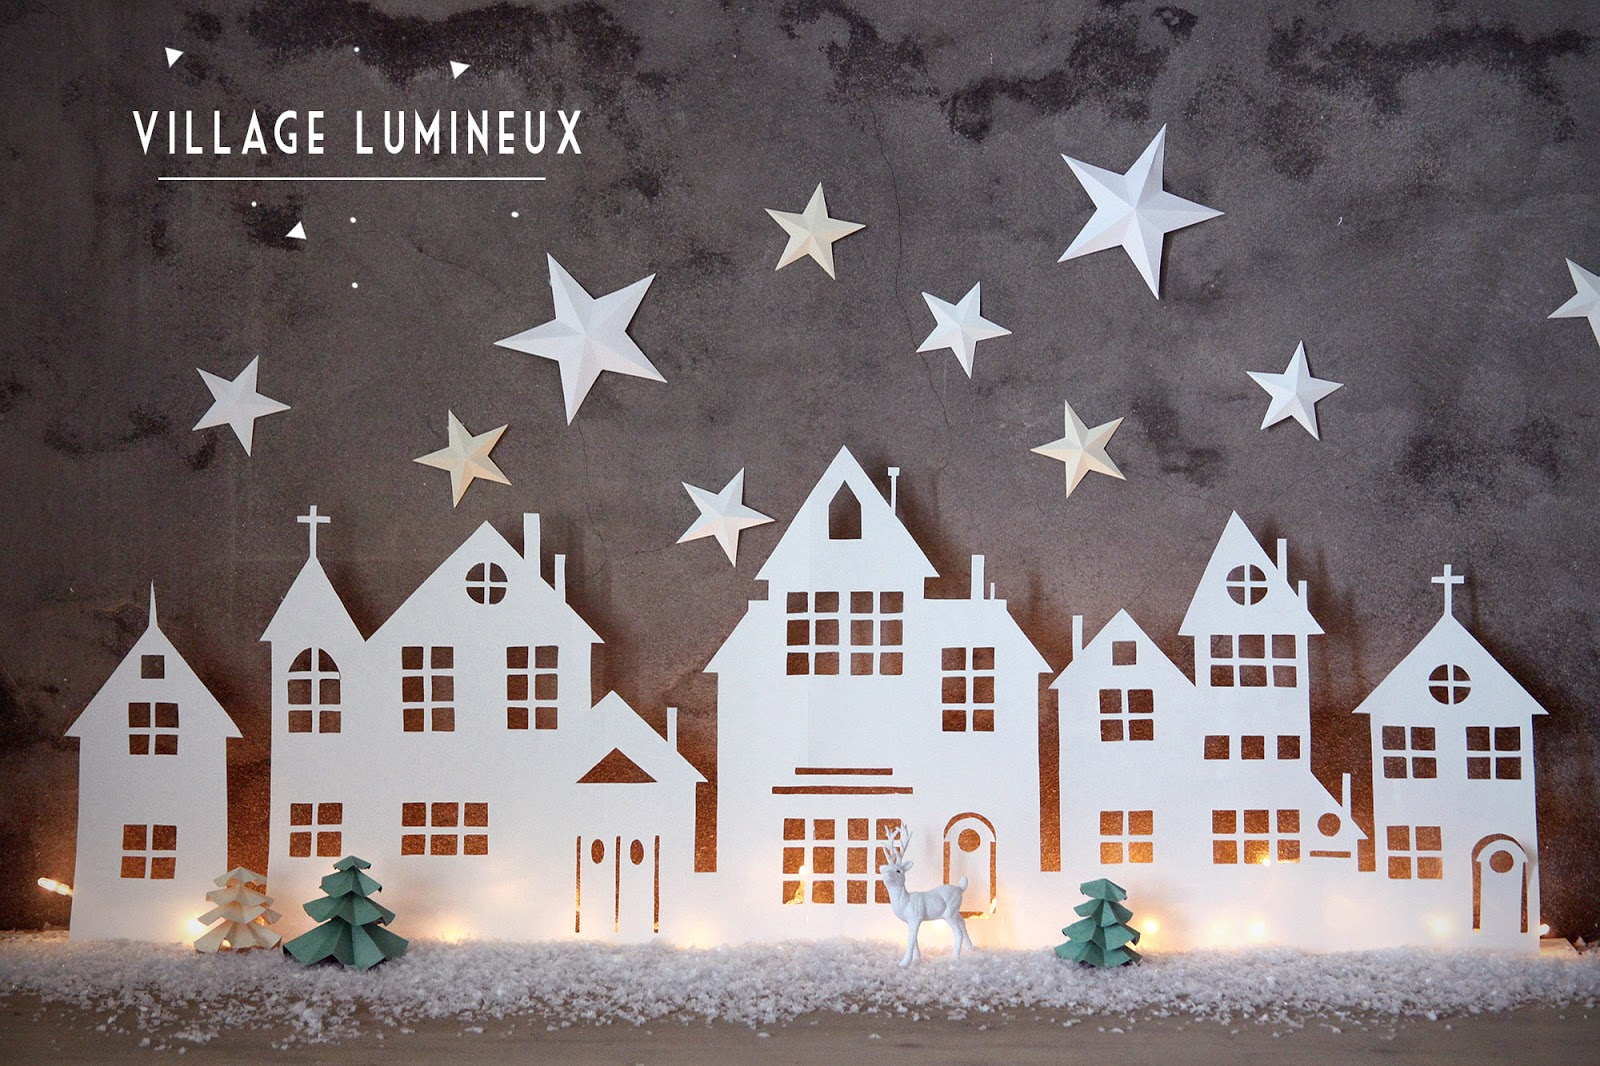 Diy village lumineux de no l - Decoration village de noel ...